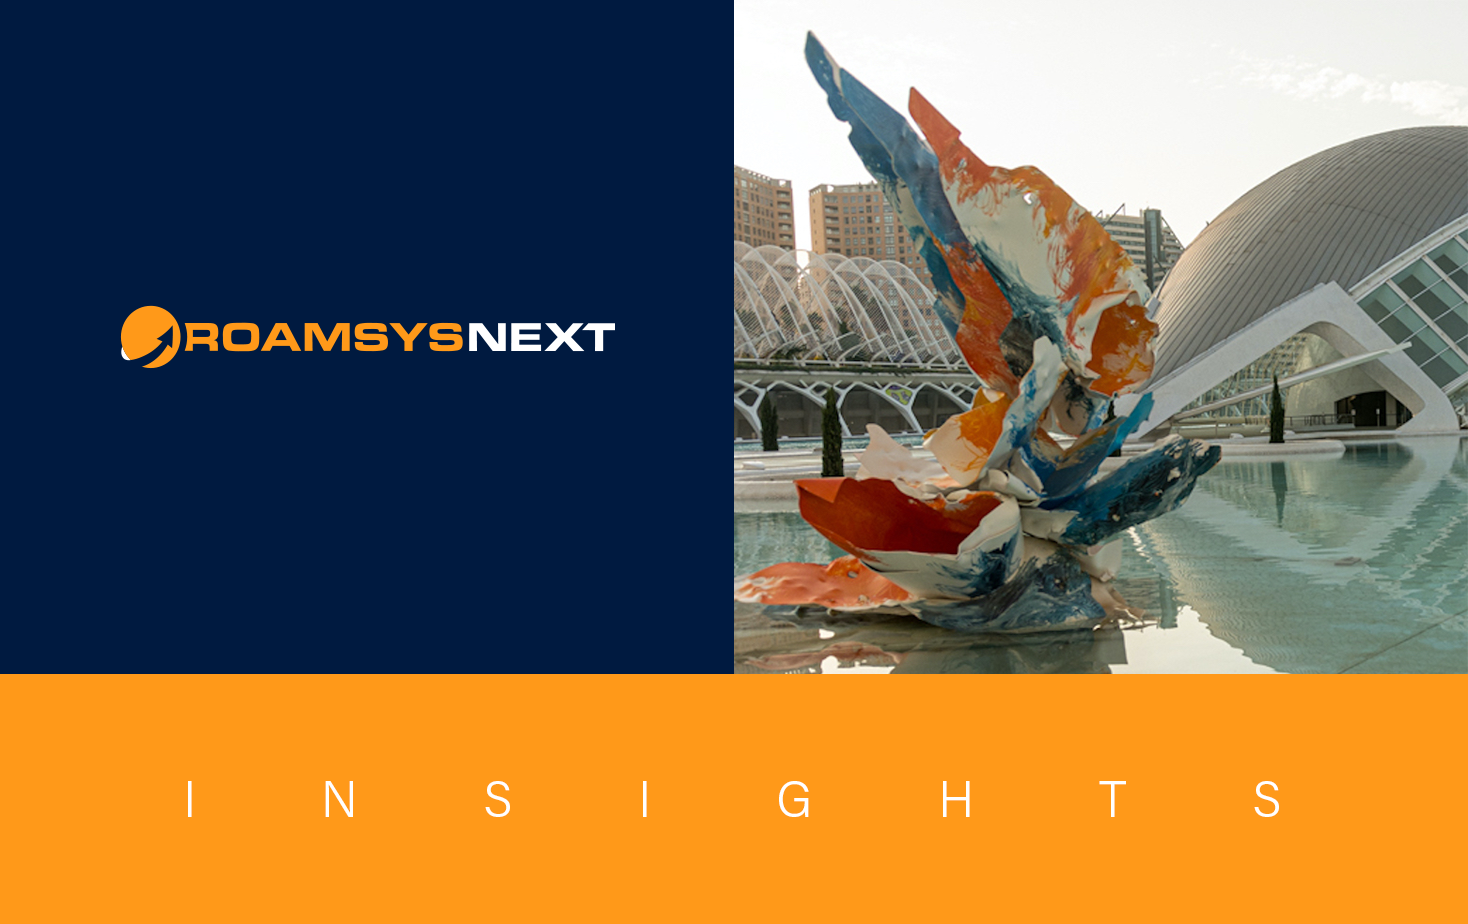 RoamsysNext Insights 30